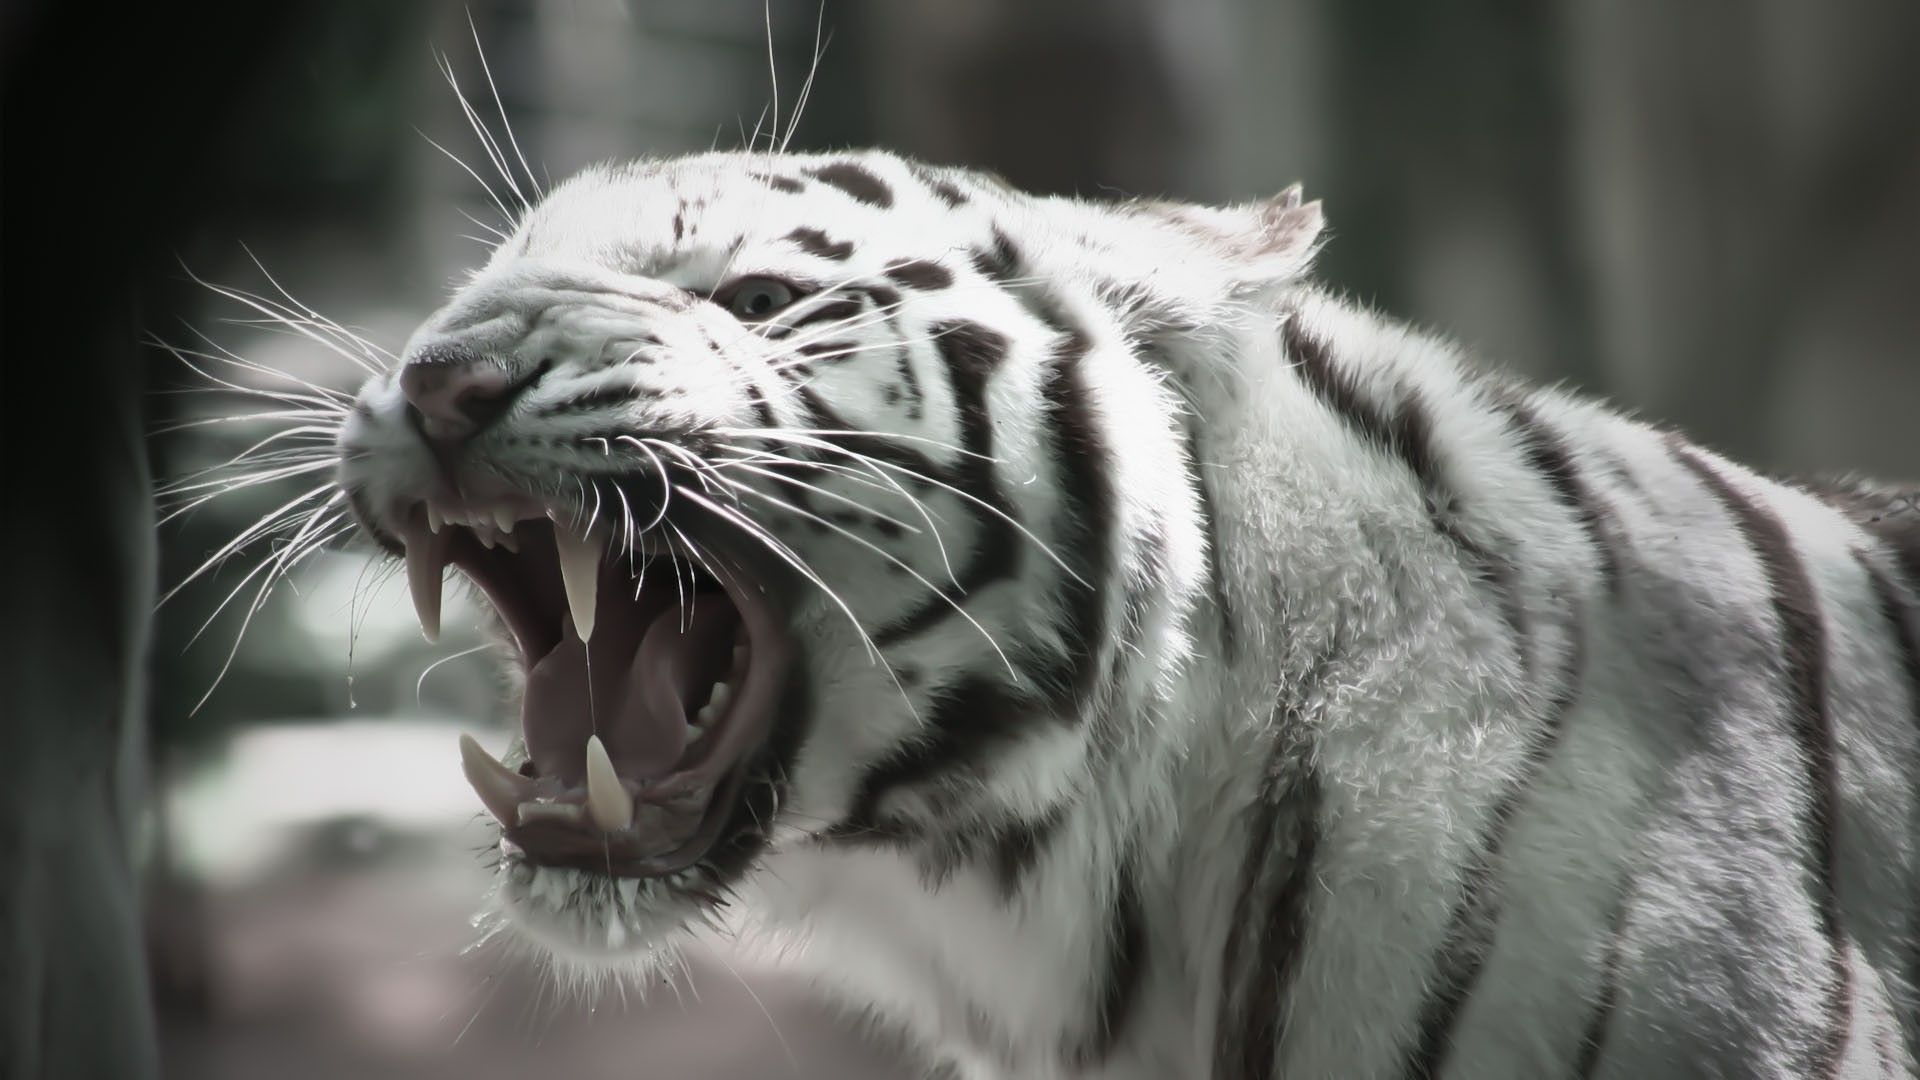 Tiger Wallpaper 3d Phone | Animals Wallpapers | Pinterest | Tiger ...